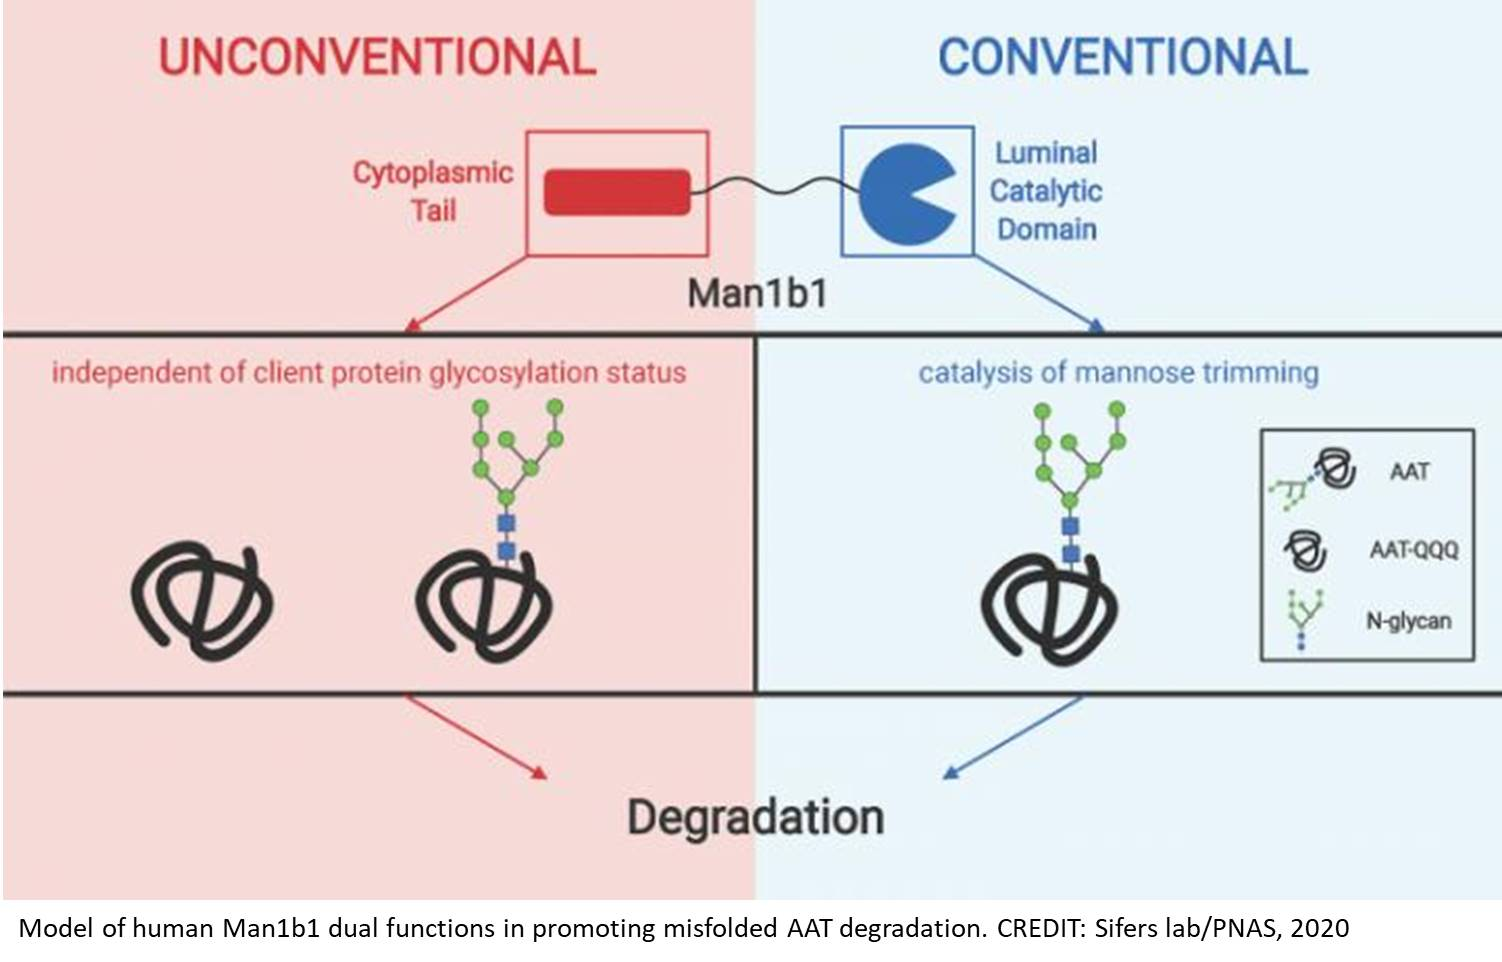 A novel mechanism for disposing of misfolded proteins